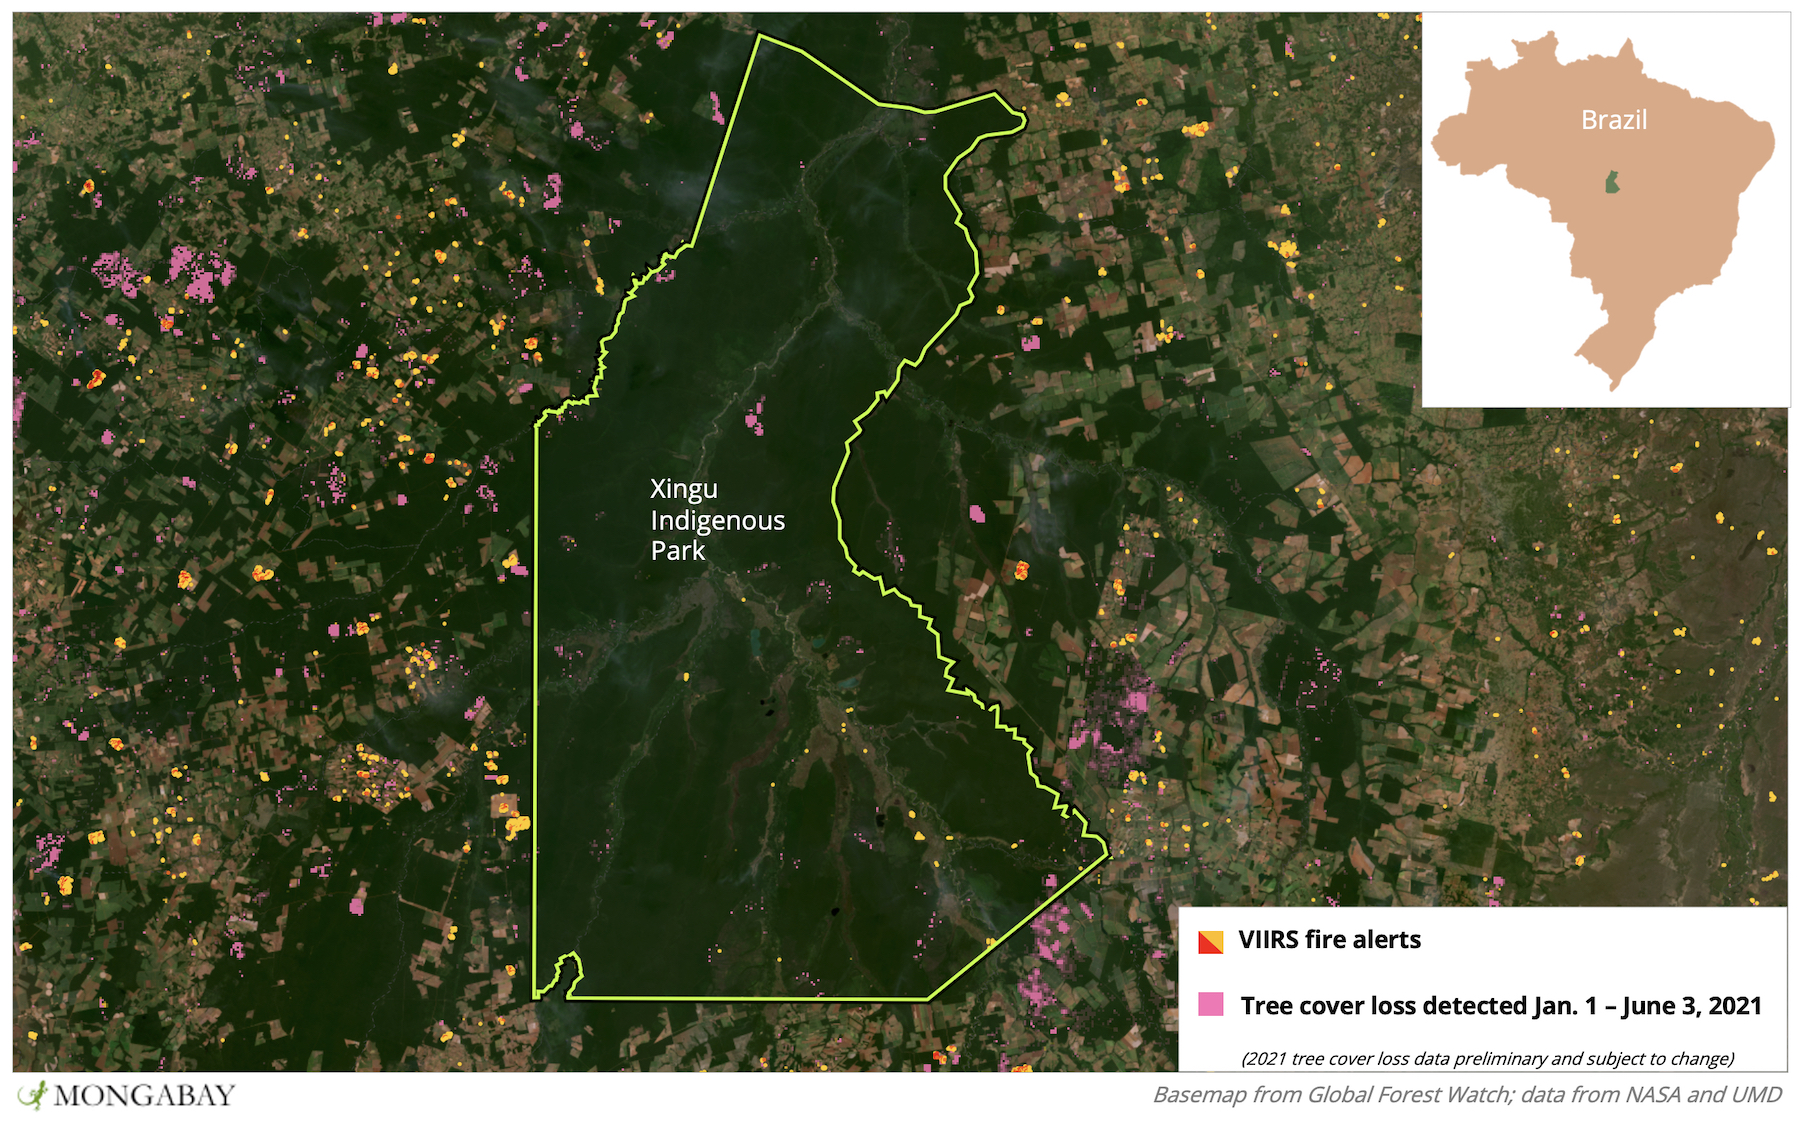 An island in a sea of deforestation, Xingu Indigenous Park is not completely immune to the clearing around it. The pink areas of tree cover loss in the park are places where trees are still dying due to last year's fire season - as this year's season starts to ramp up.